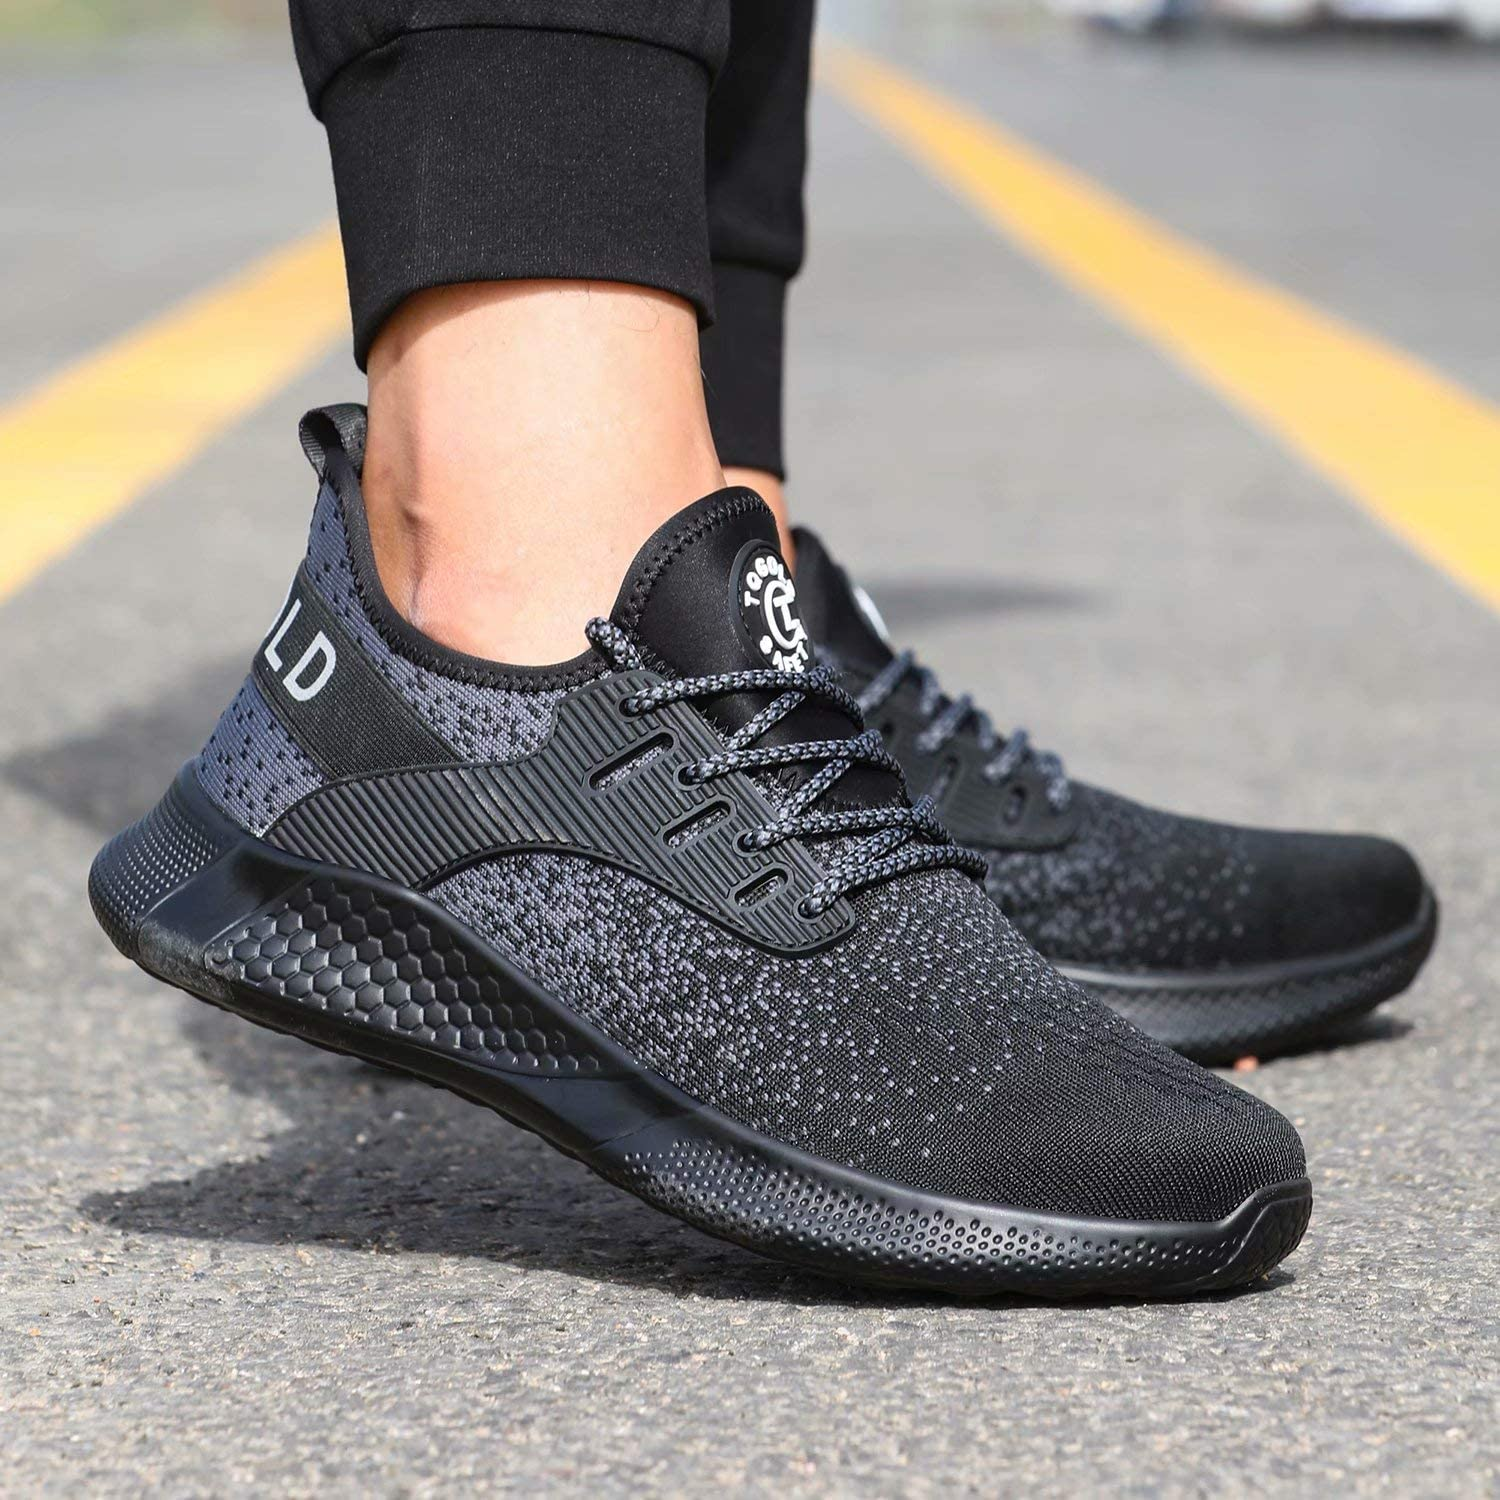 tqgold/® Safety Shoes Men Lightweight Steel Toe Cap Trainers Women Breathable Work Shoes Industrial Sneakers